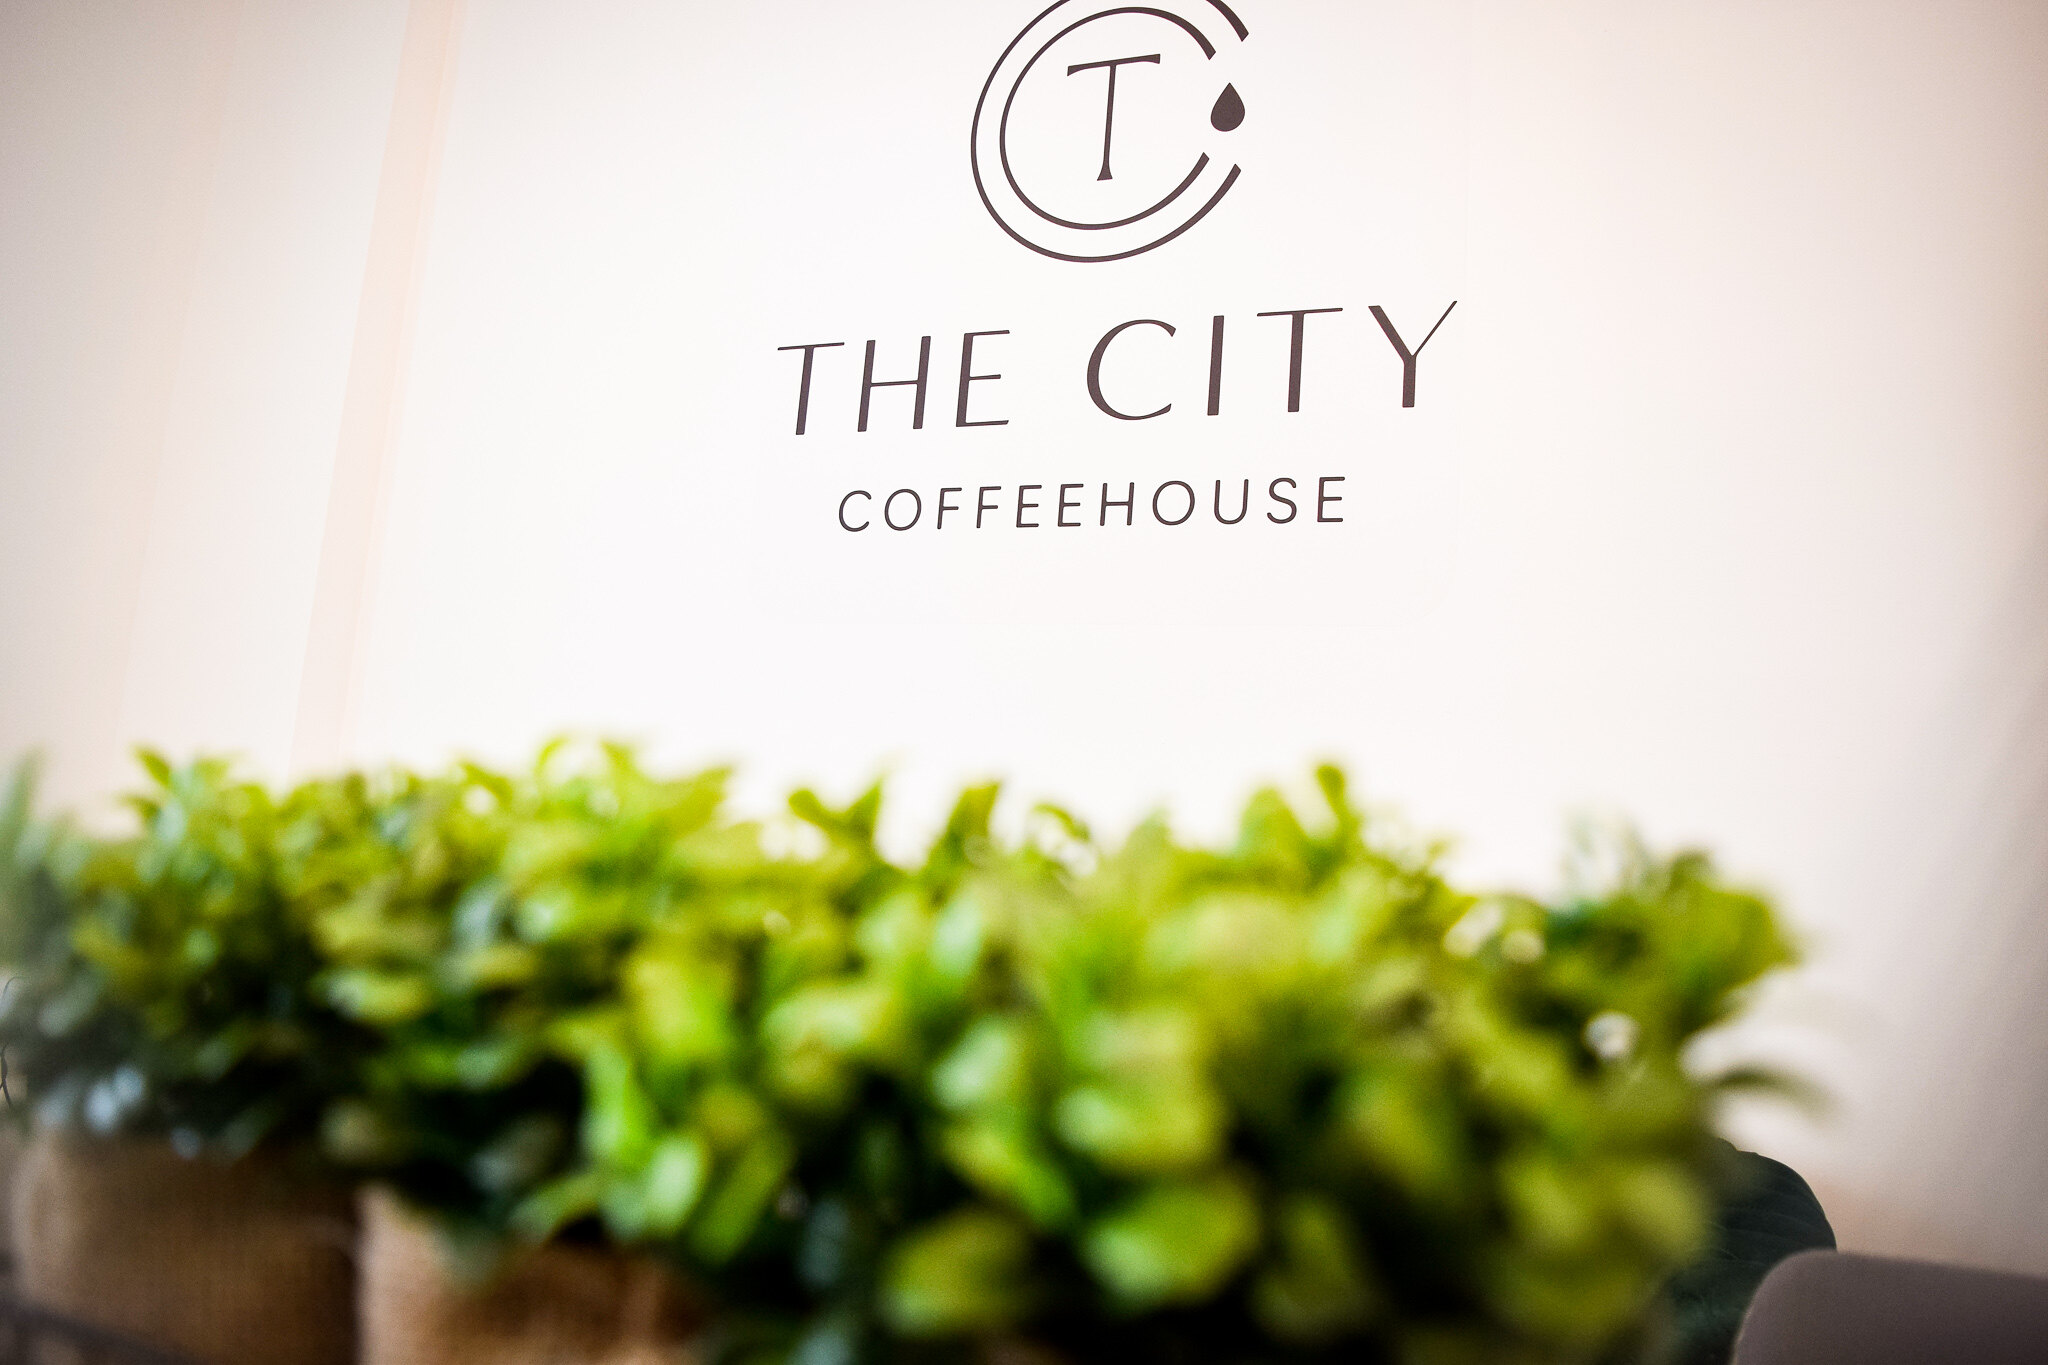 The City Coffeehouse